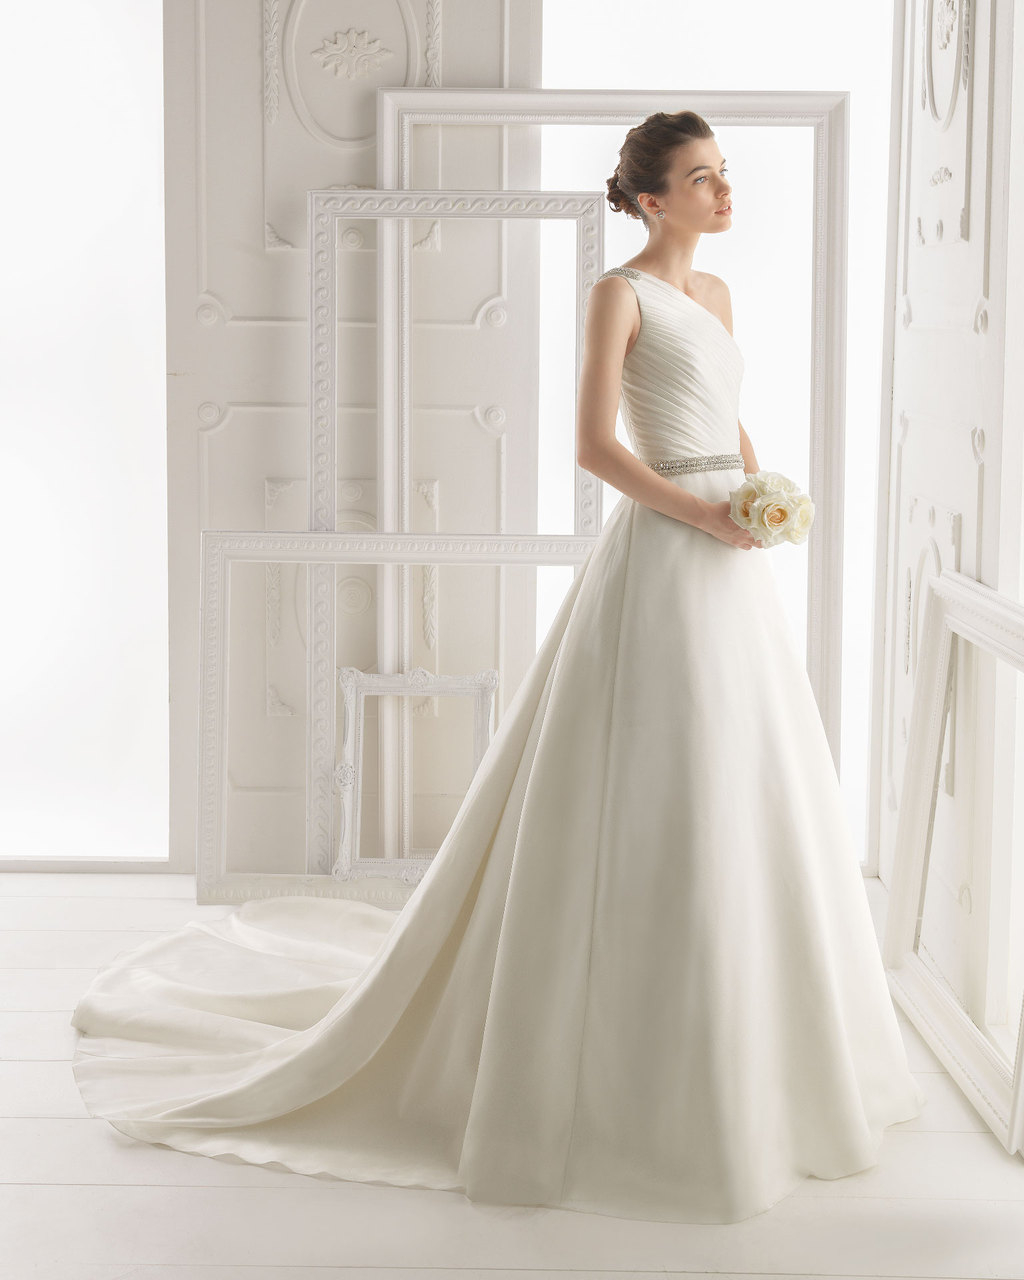 Aire-barcelona-wedding-dress-2014-bridal-orion.full